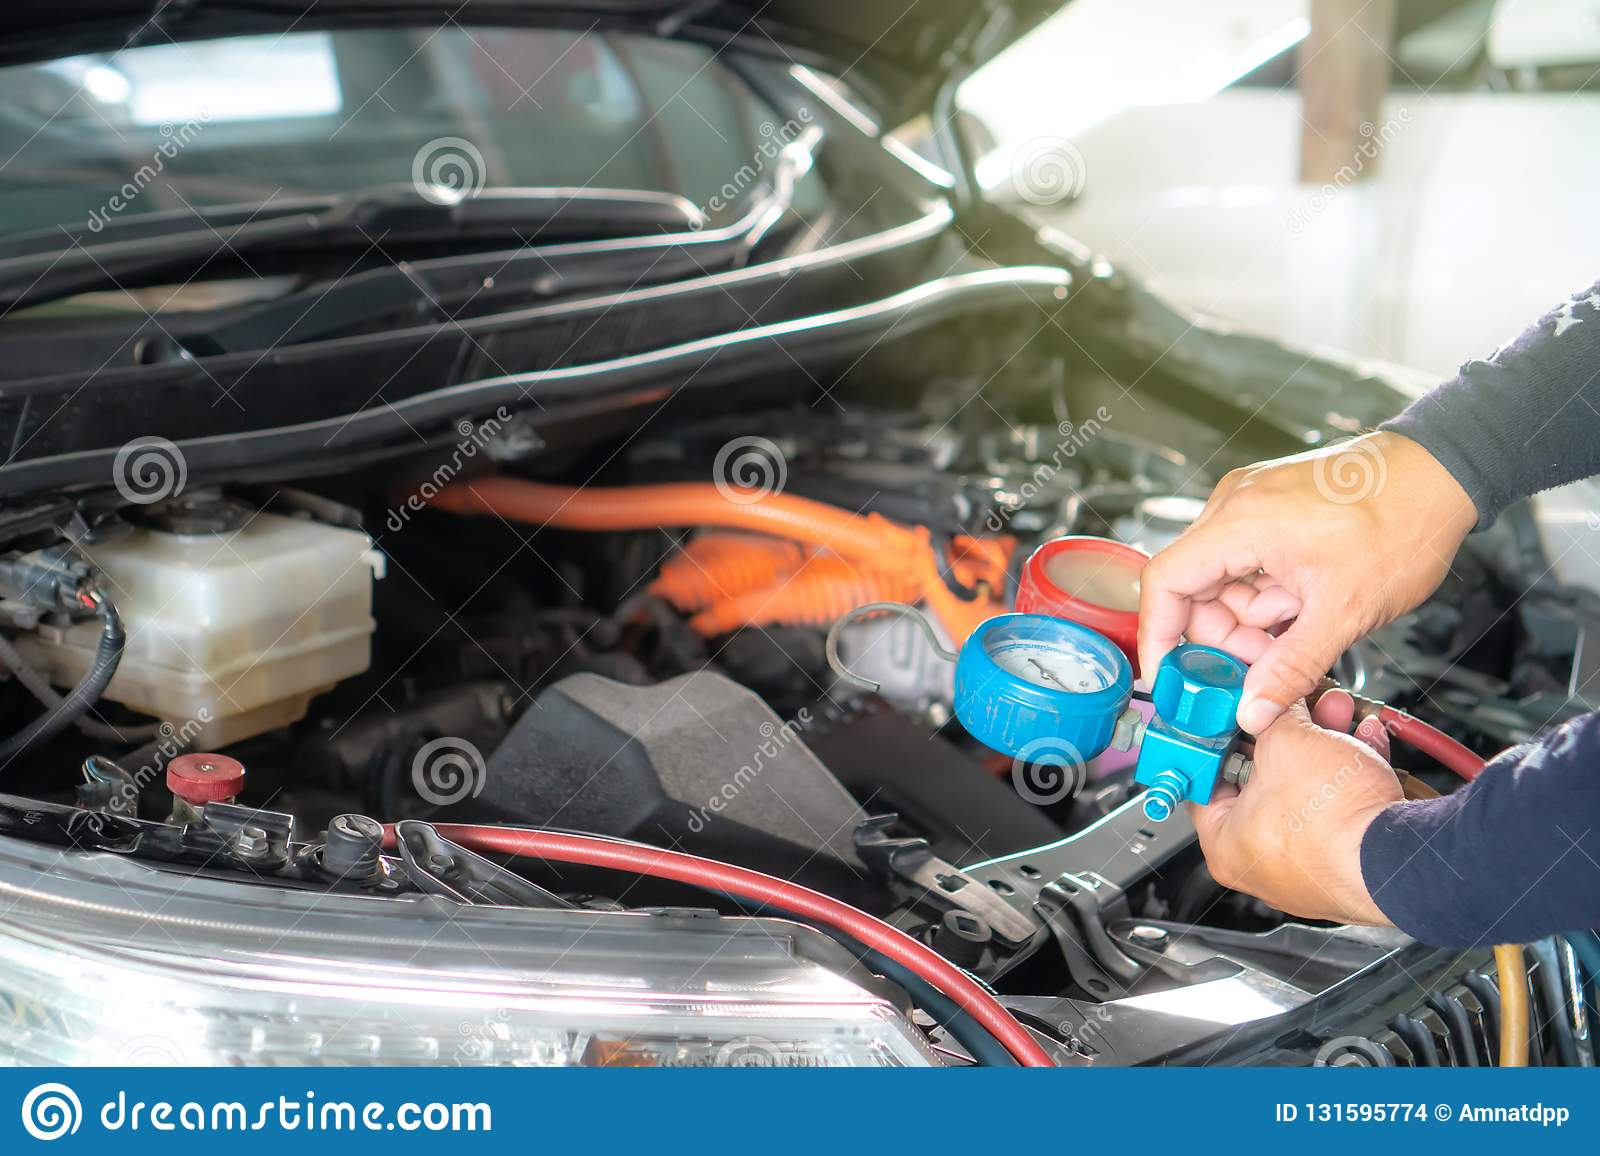 Check Car Air Conditioning System Refrigerant Recharge Stock